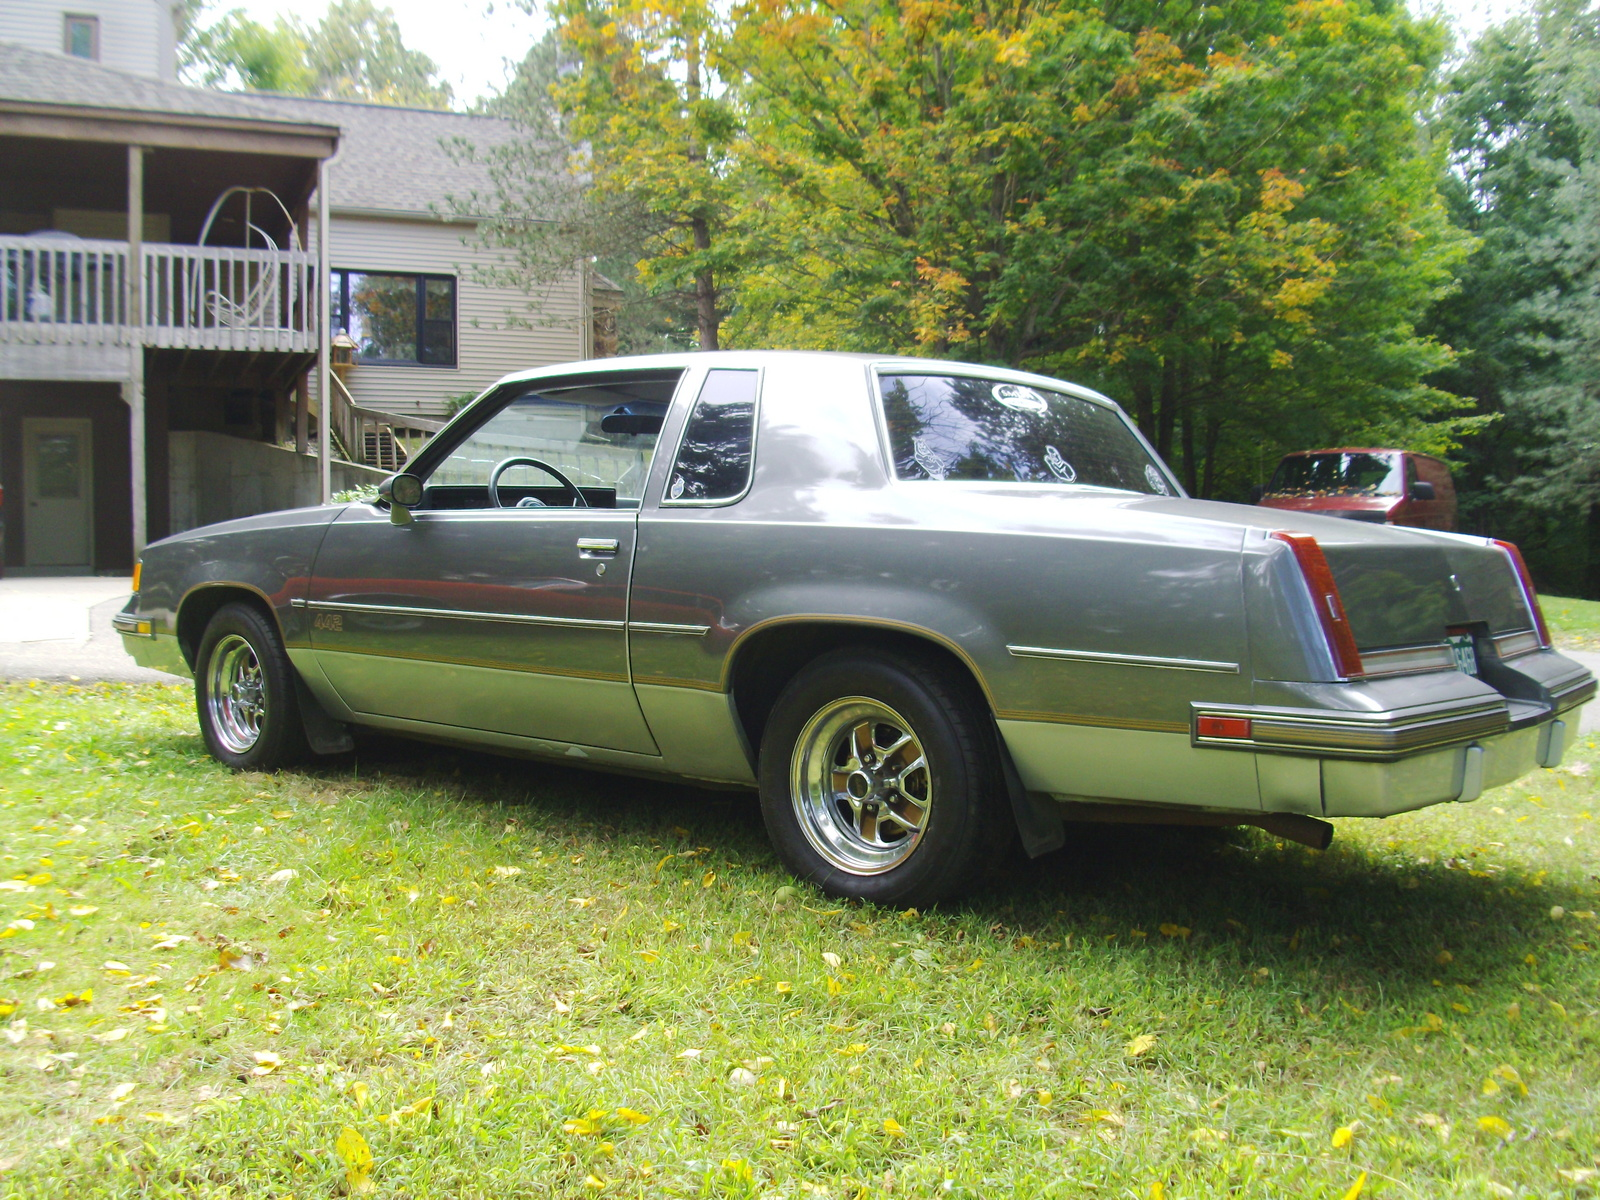 1987 Oldsmobile 442 picture, exterior